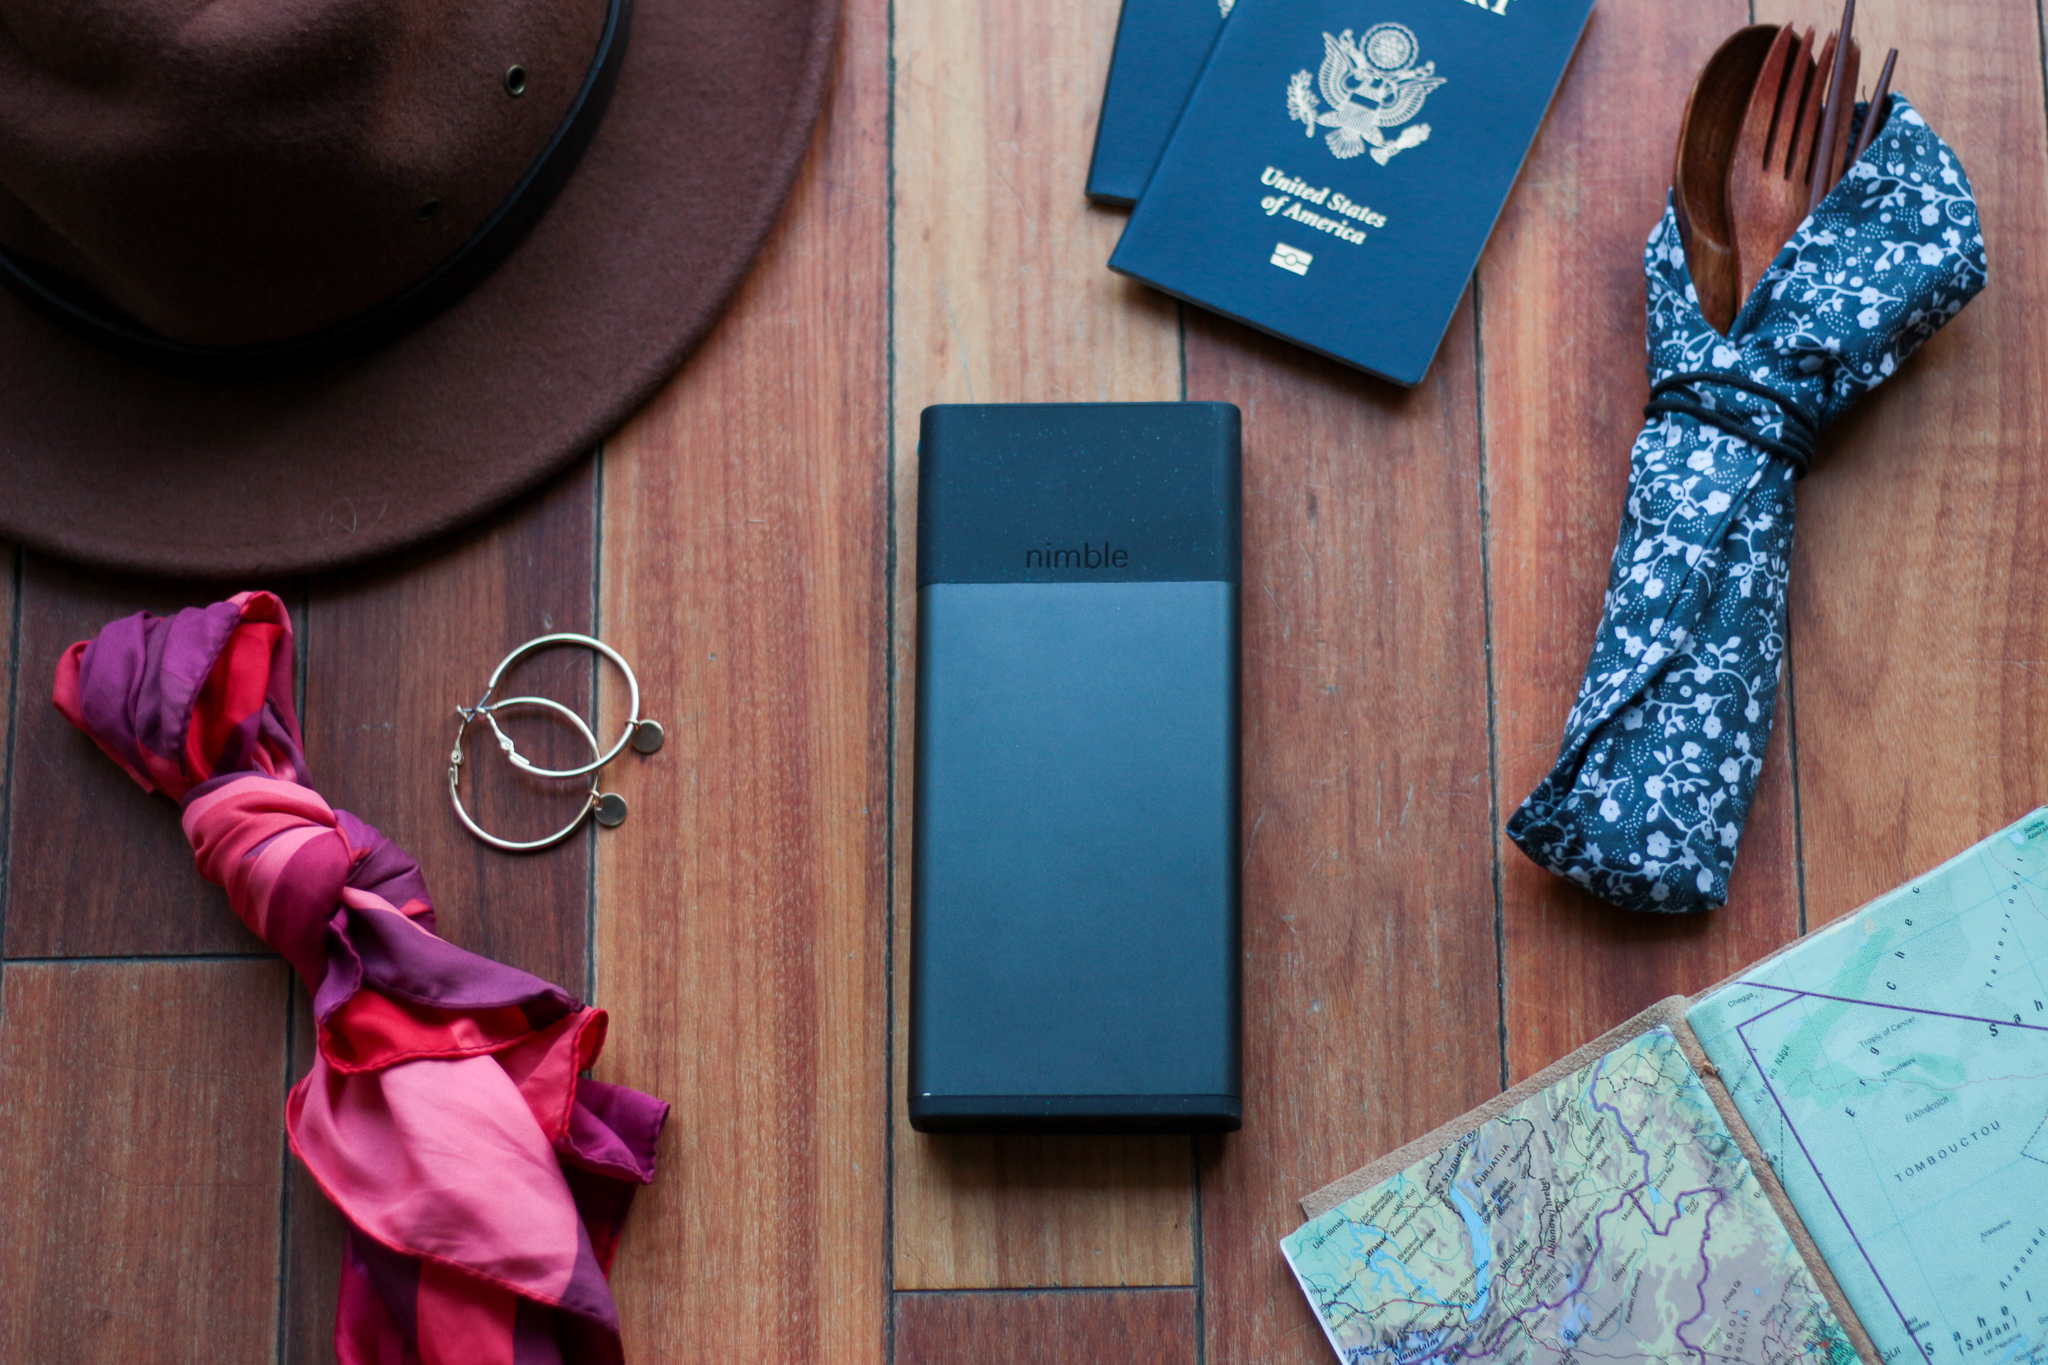 Nimble's 10-day charger surrounded by travel accessories. Photo by Misty Foster